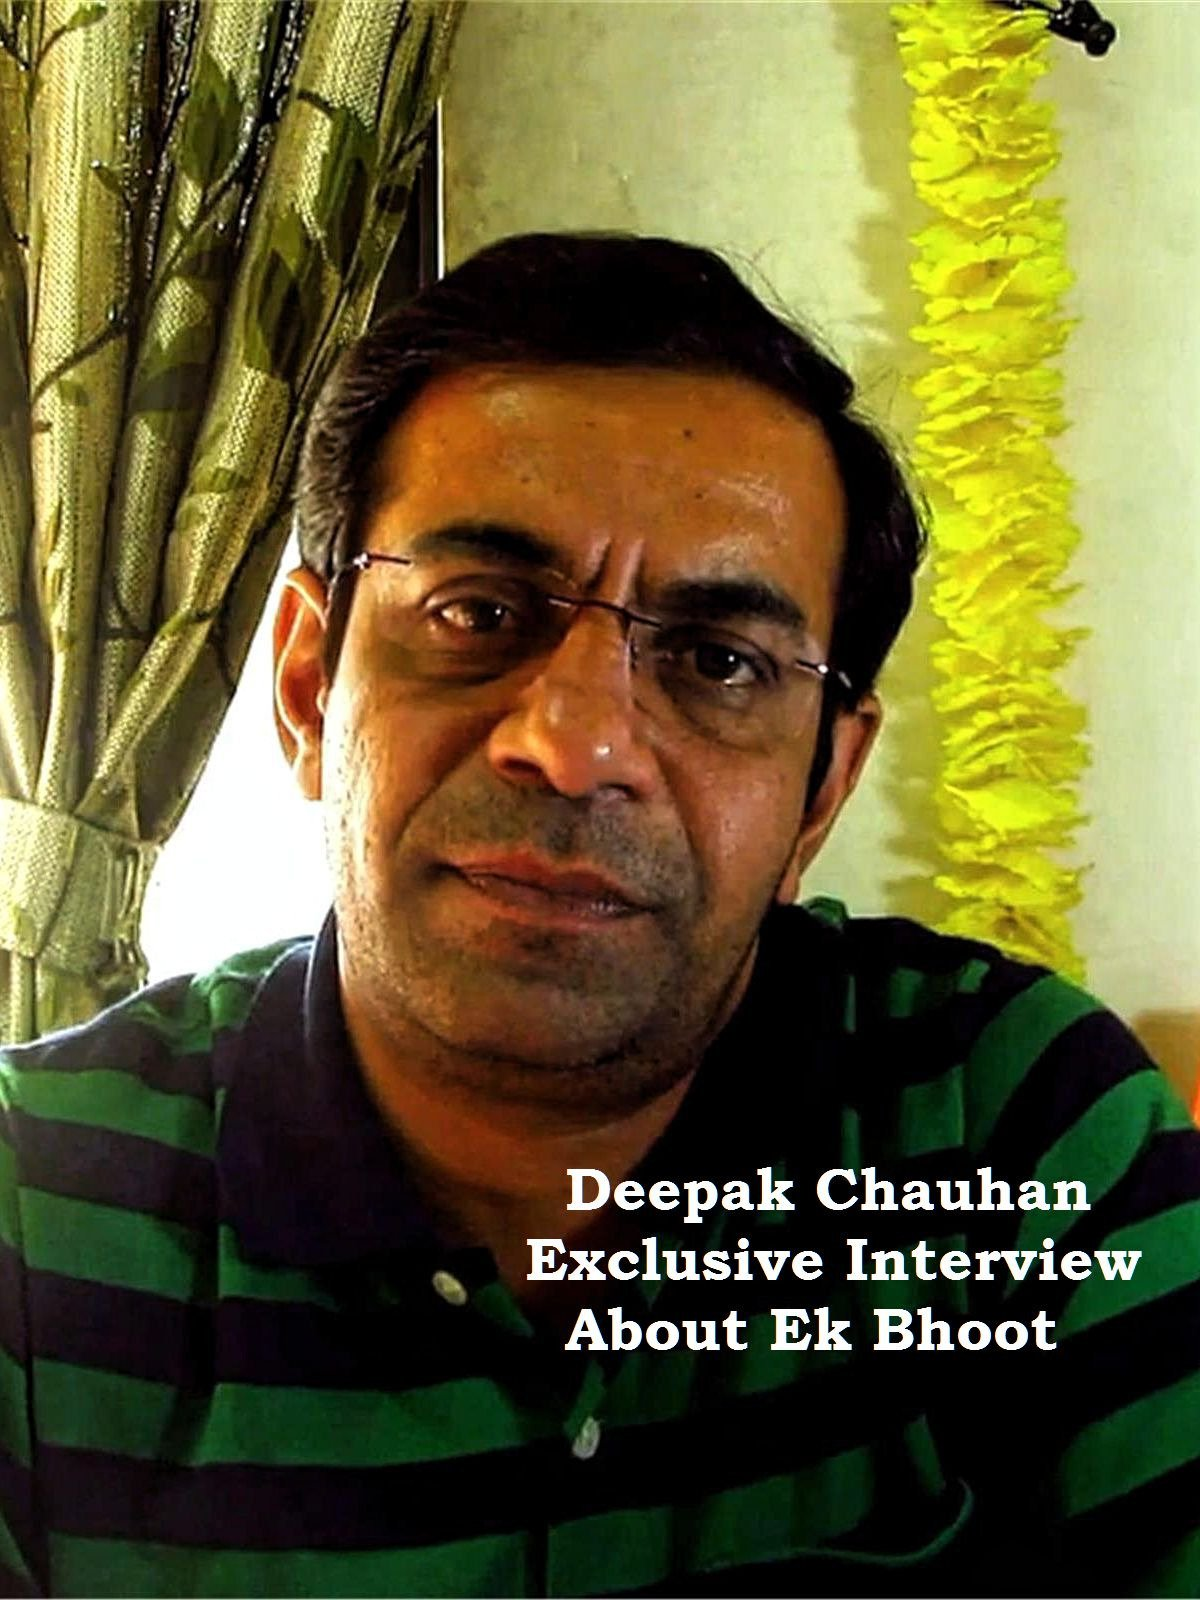 Deepak Chauhan Exclusive Interview About Ek Bhoot